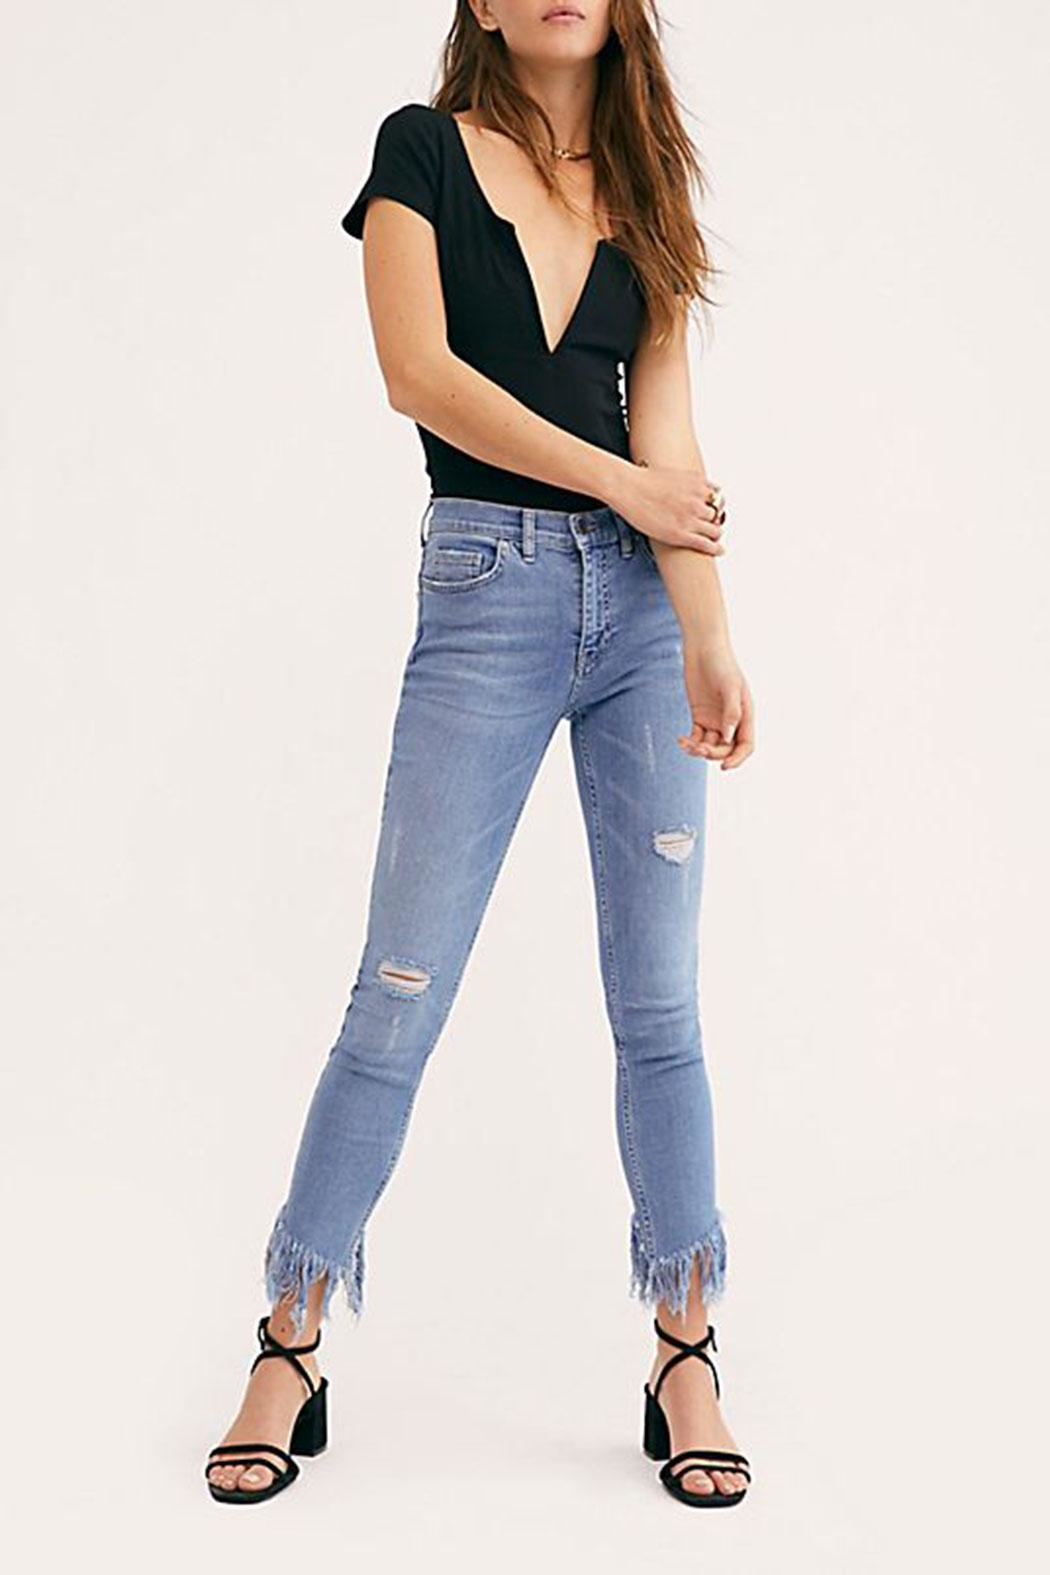 Free People Great-Heights Frayed Skinny-Jean - Main Image